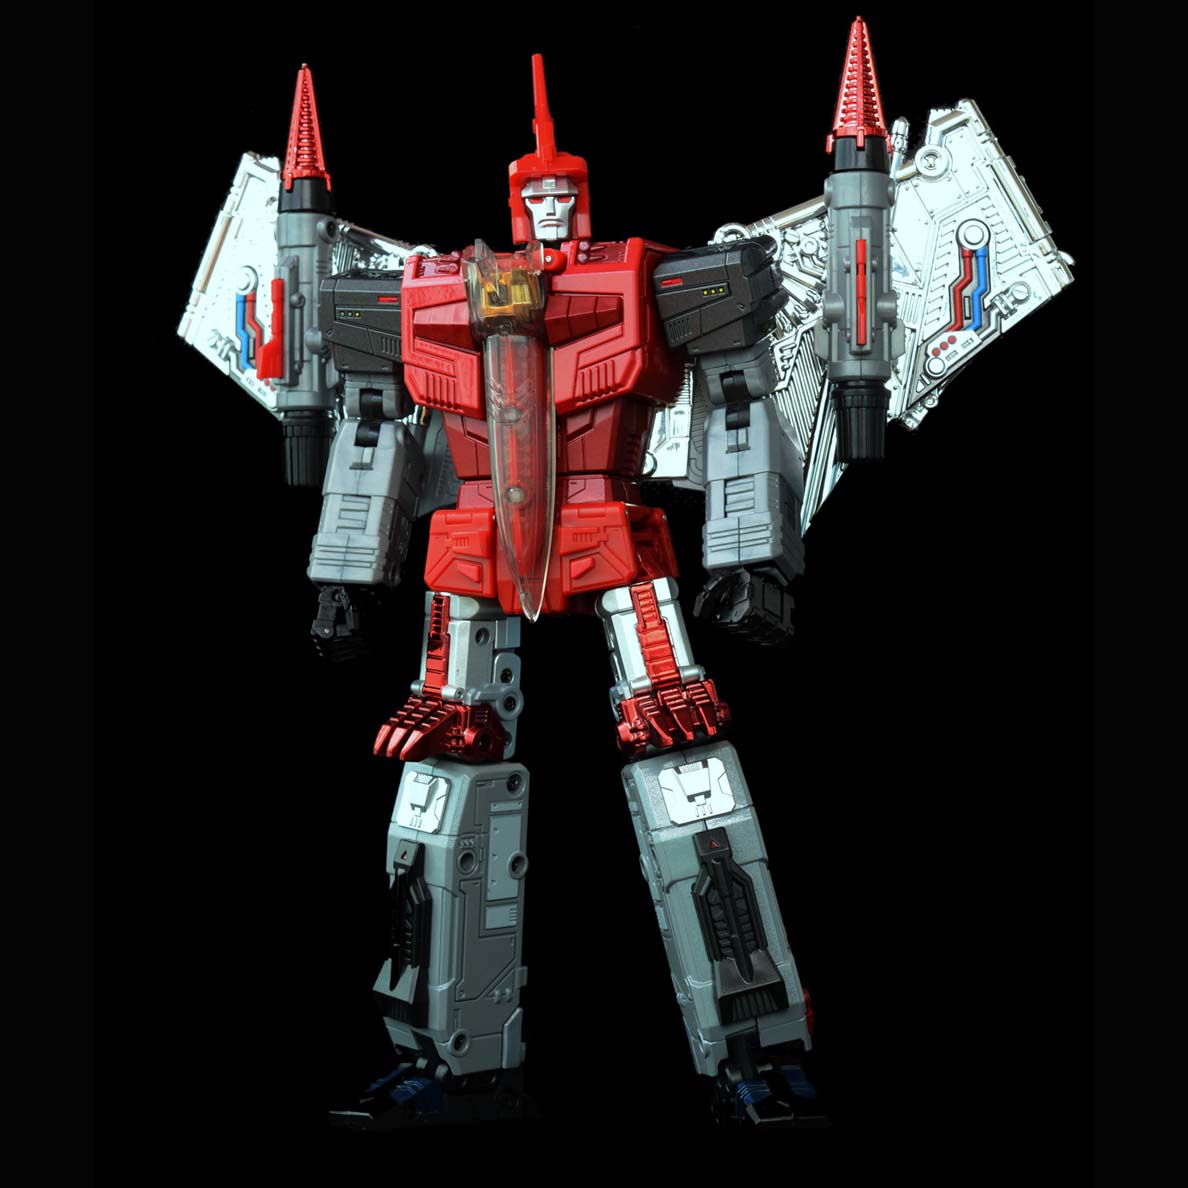 Fans Toys FT-05 Soar (Red)  Ship Now ~